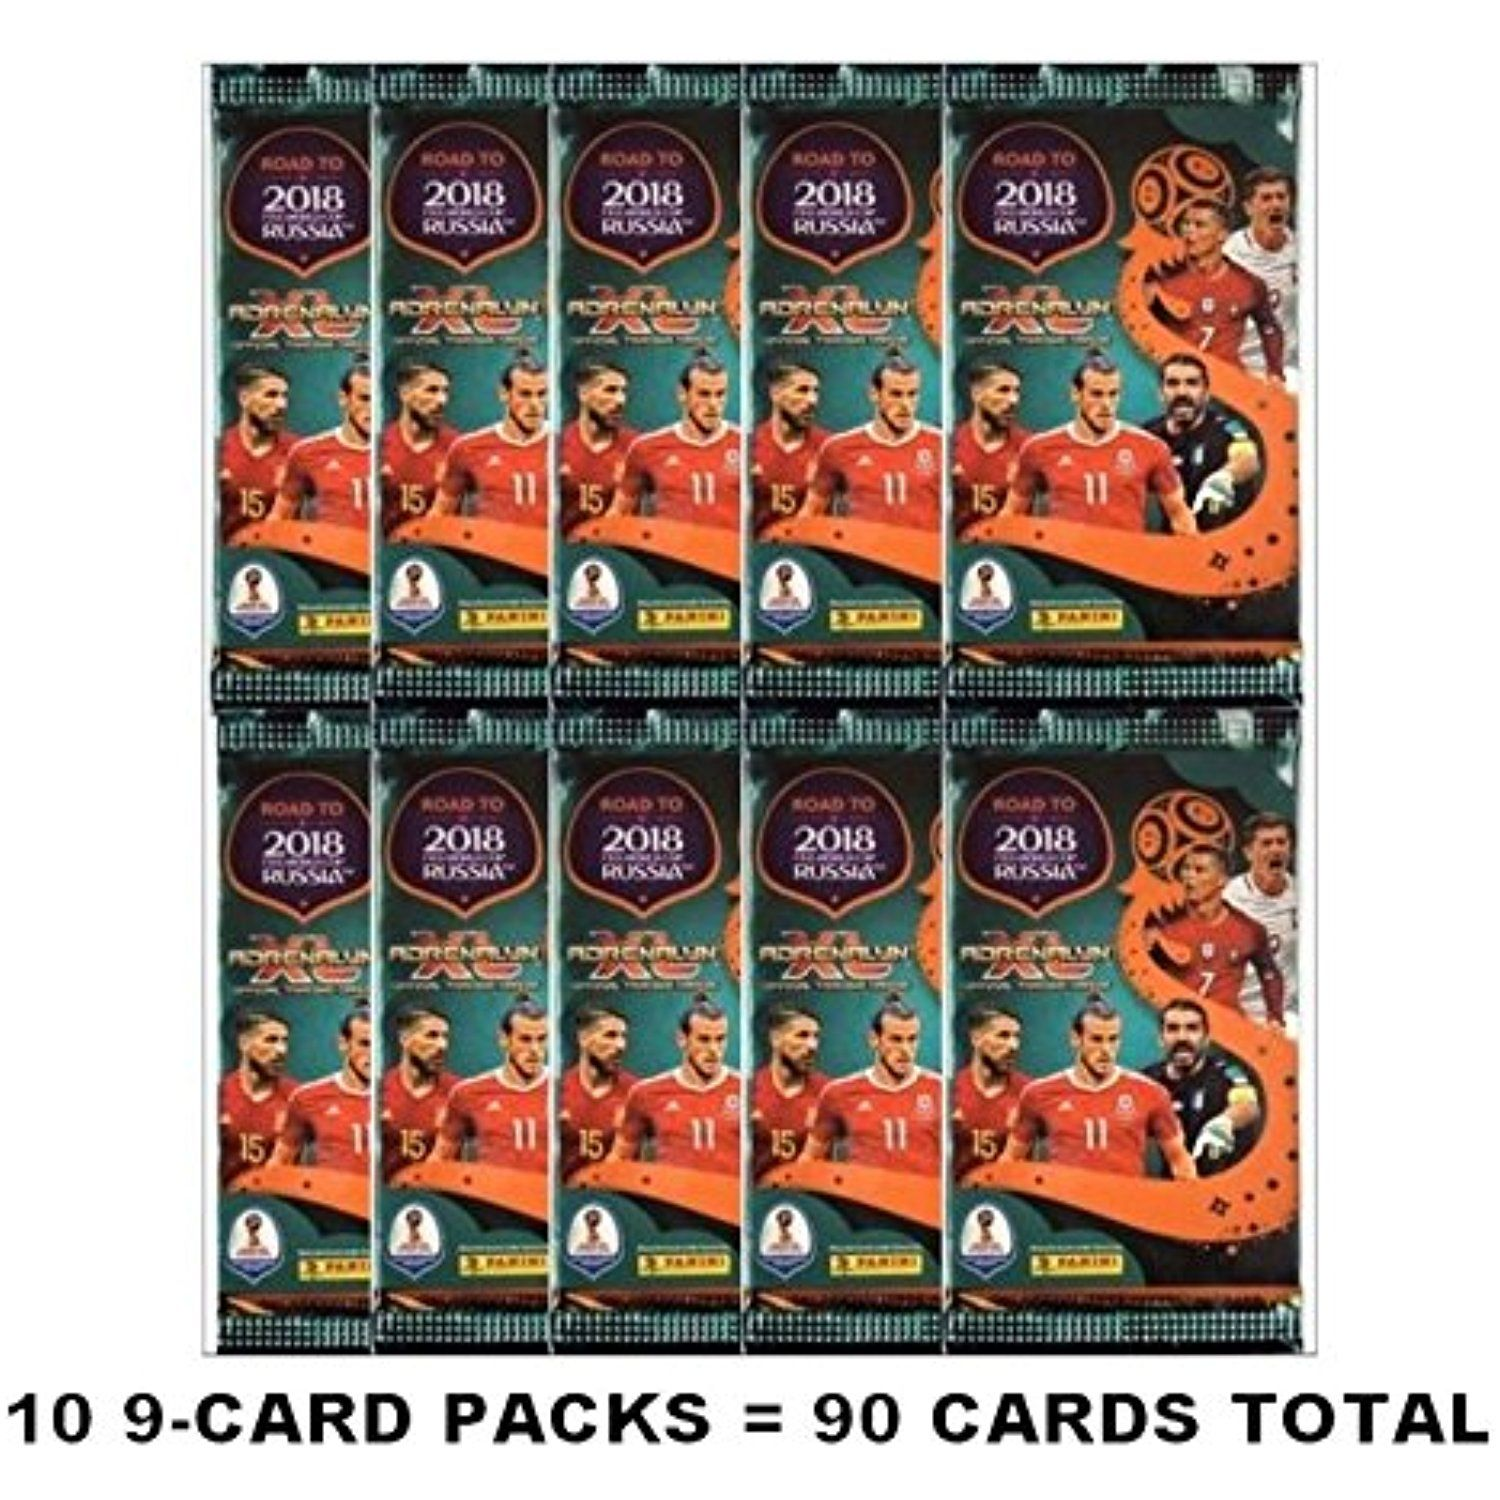 5052af8b1 Panini ROAD TO THE WORLD CUP RUSSIA 2018 Adrenalyn XL Soccer Cards. 10 9-